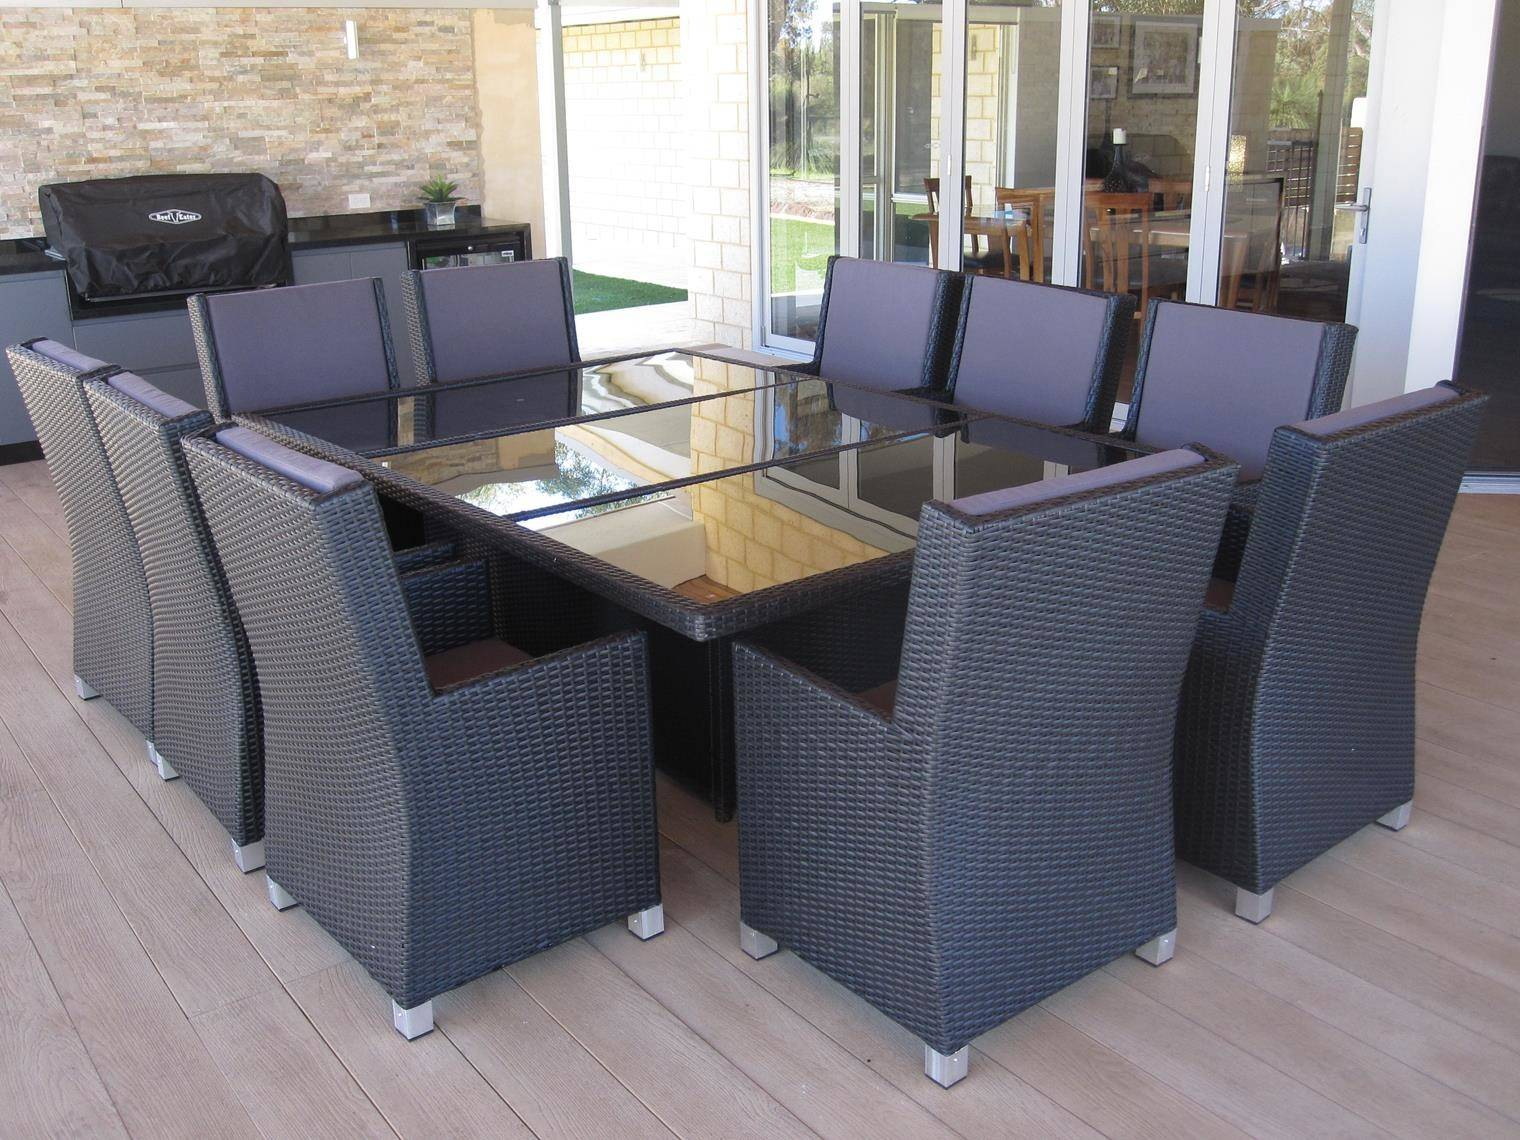 Only Perth Large Black Dining Set High Chairs Garden